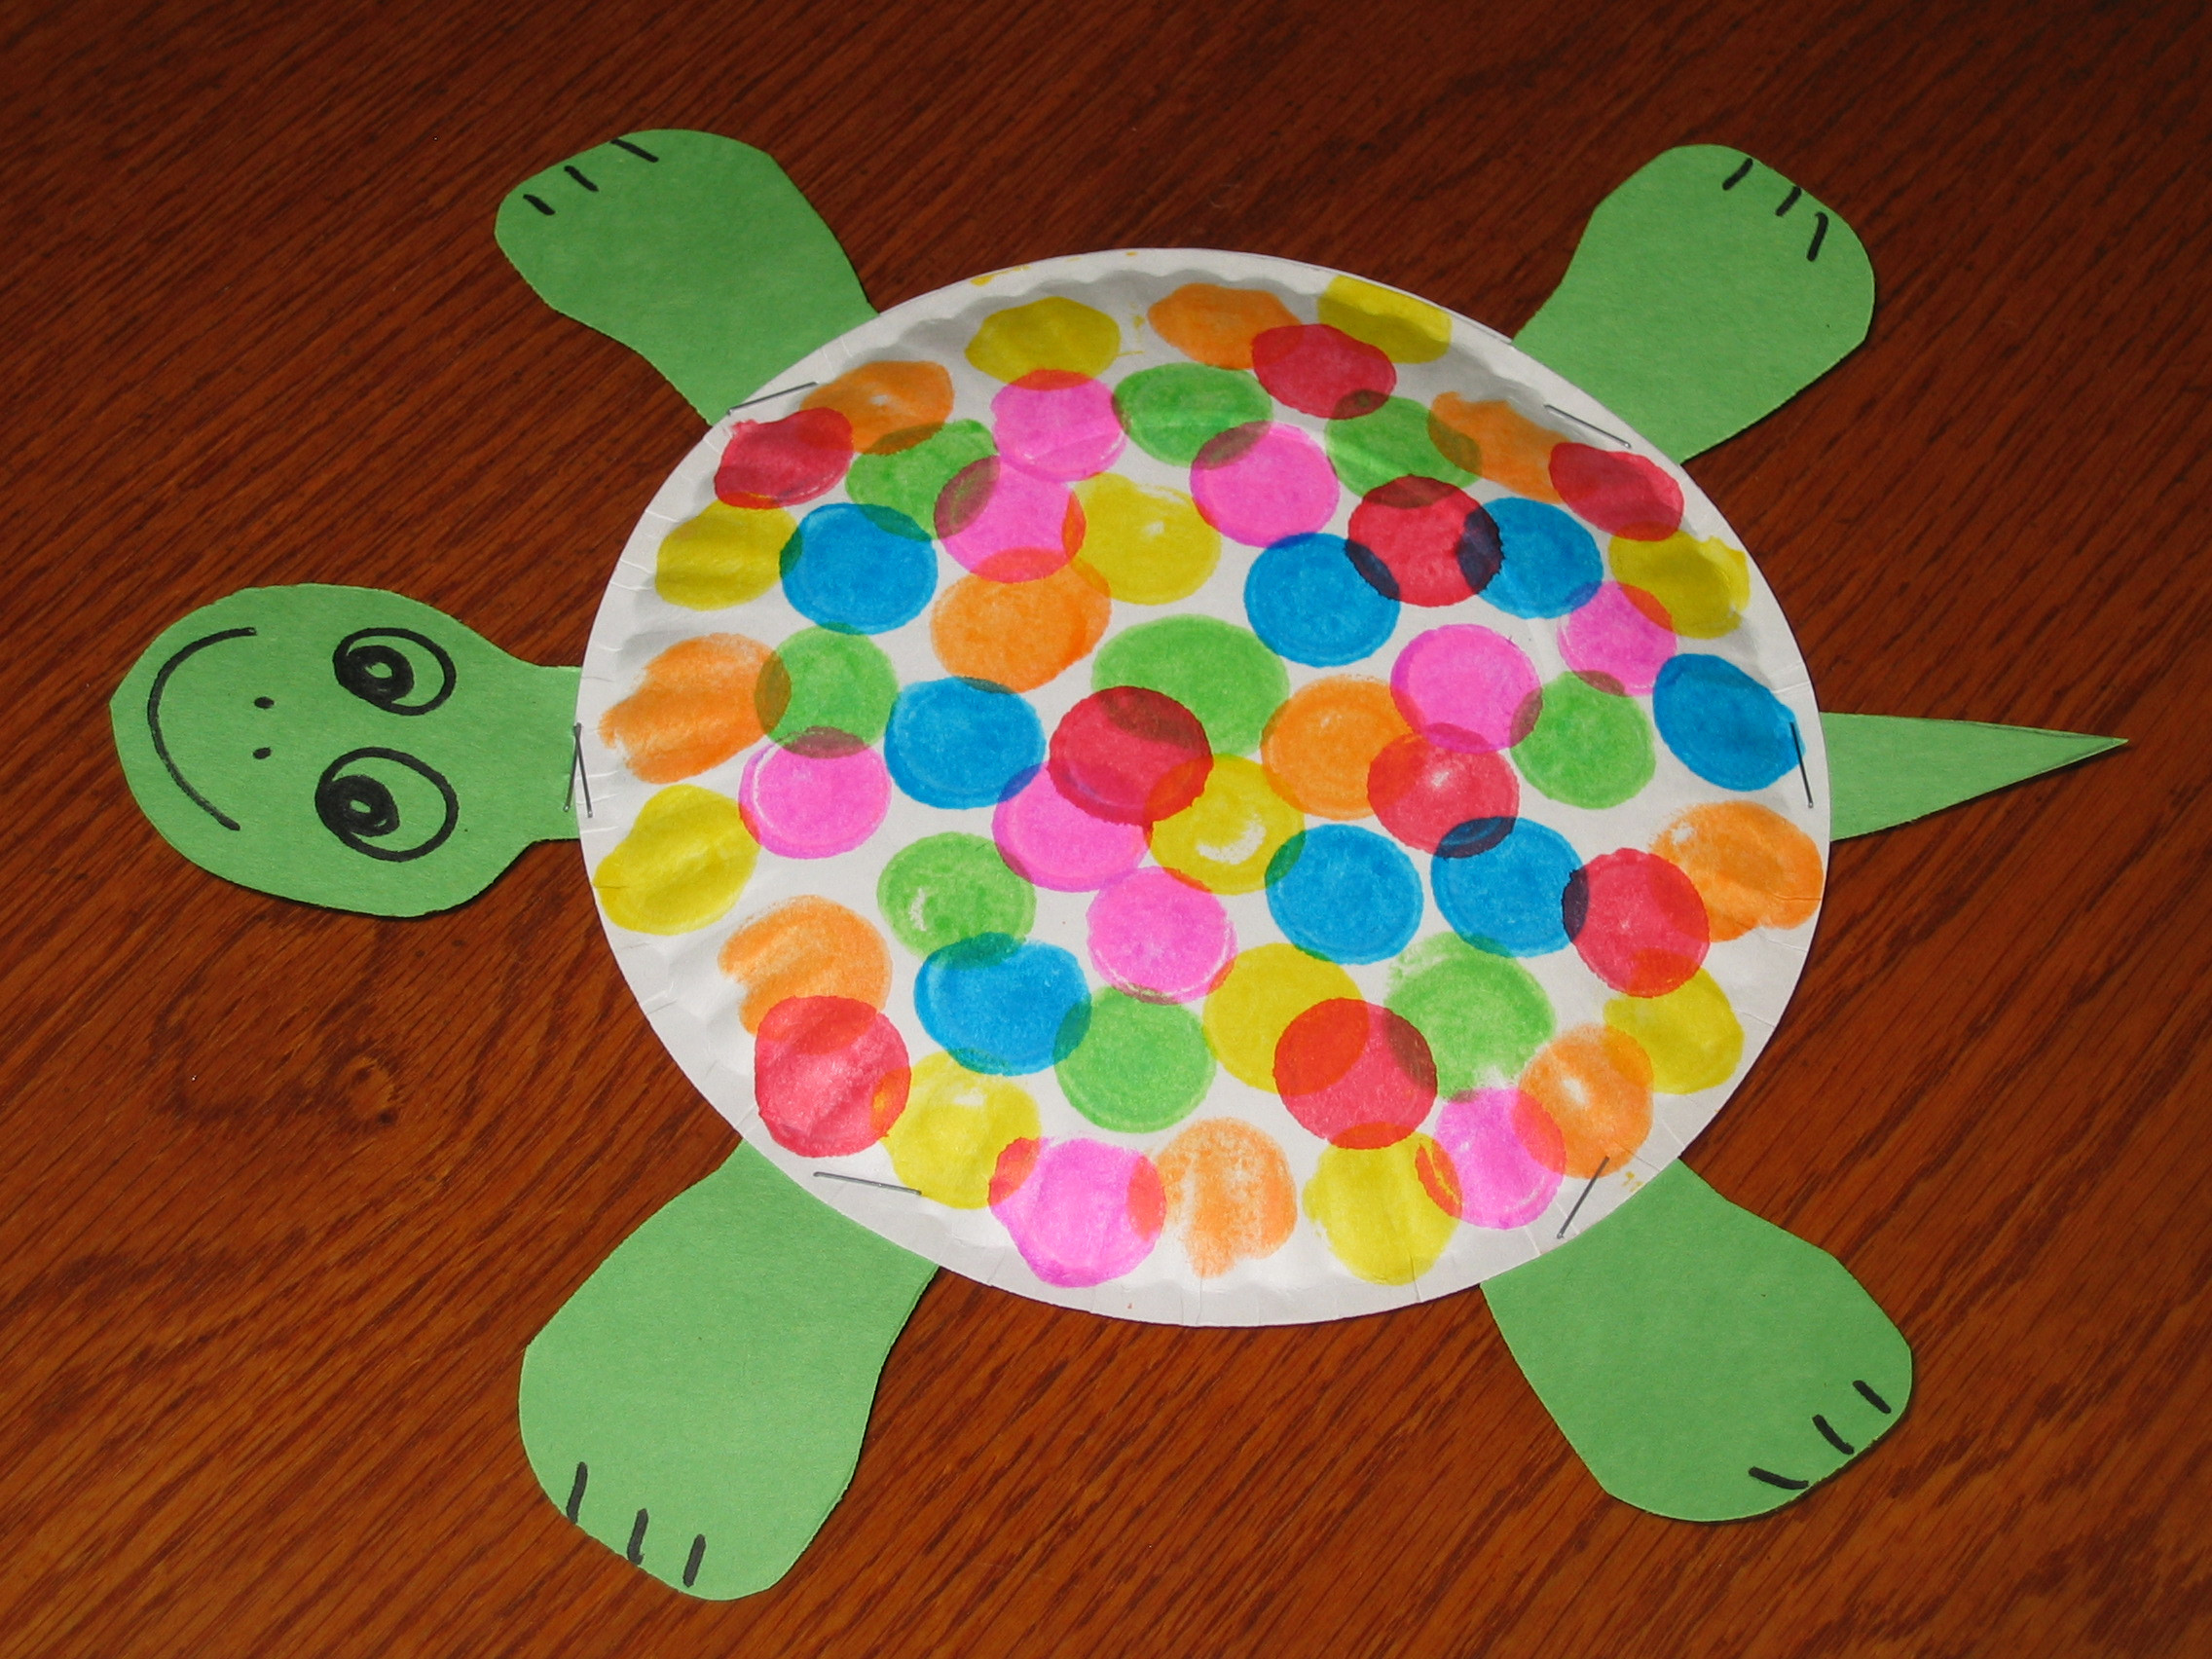 Best ideas about Fun Art Projects For Preschoolers . Save or Pin 40 Fun and Fantastic Paper Plate Crafts Now.